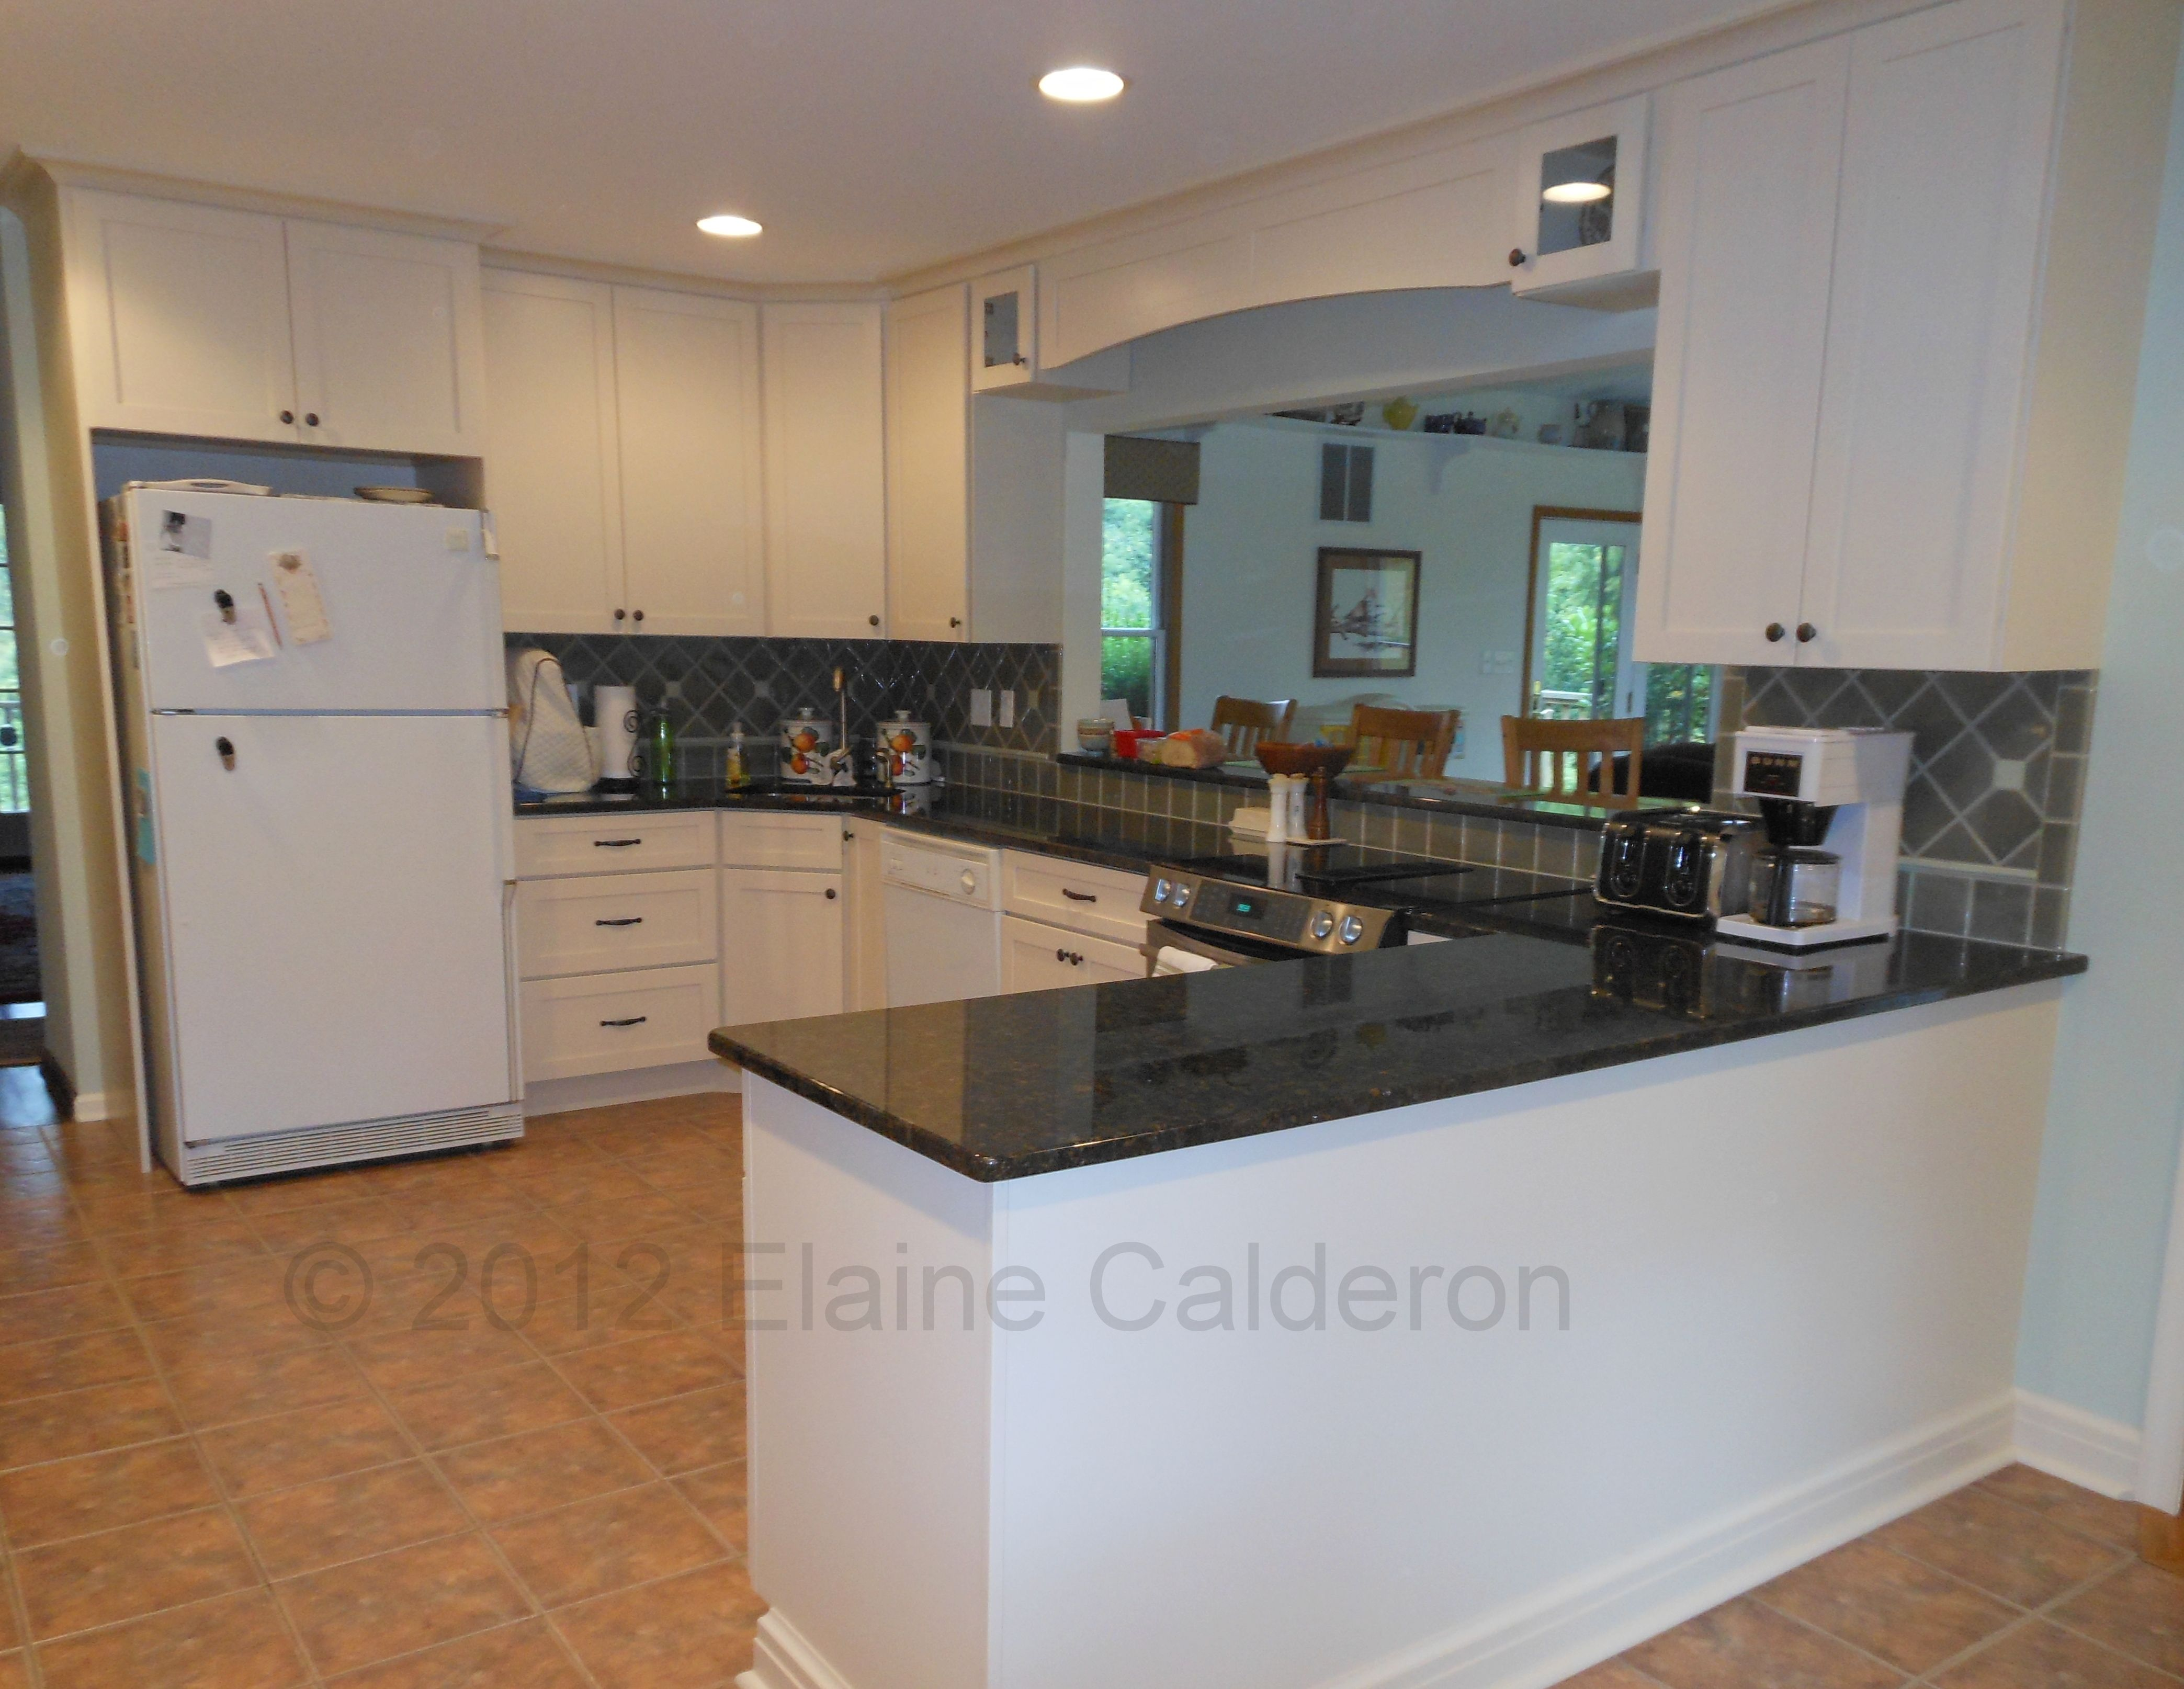 Butterfly Green Granite Countertops Pictures Medallion Cabinetry Potter 39s Mill Maple Door Painted